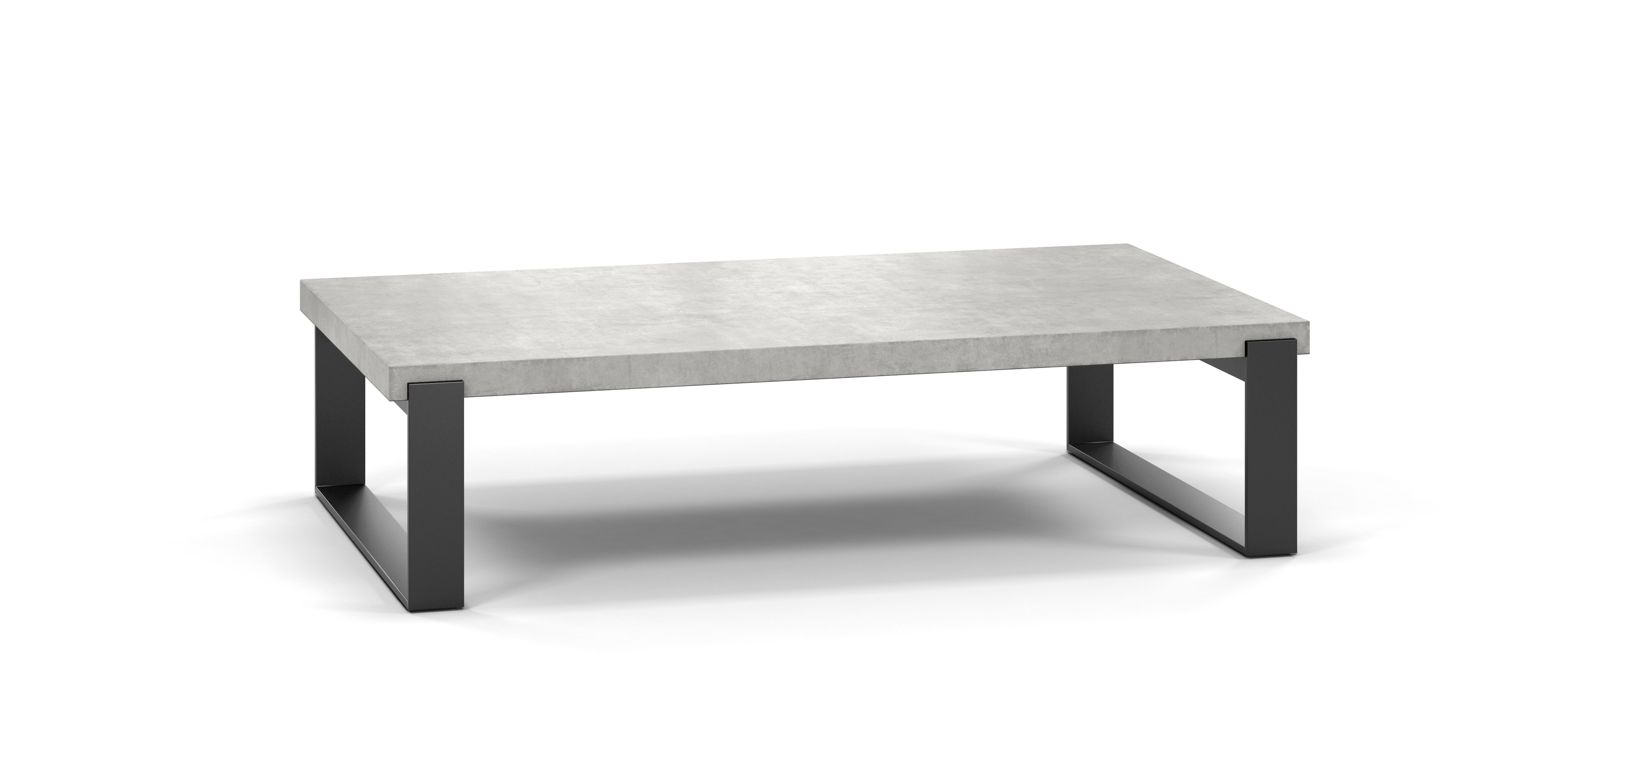 Optimum b ton cocktail table roche bobois for Table basse roche bobois prix